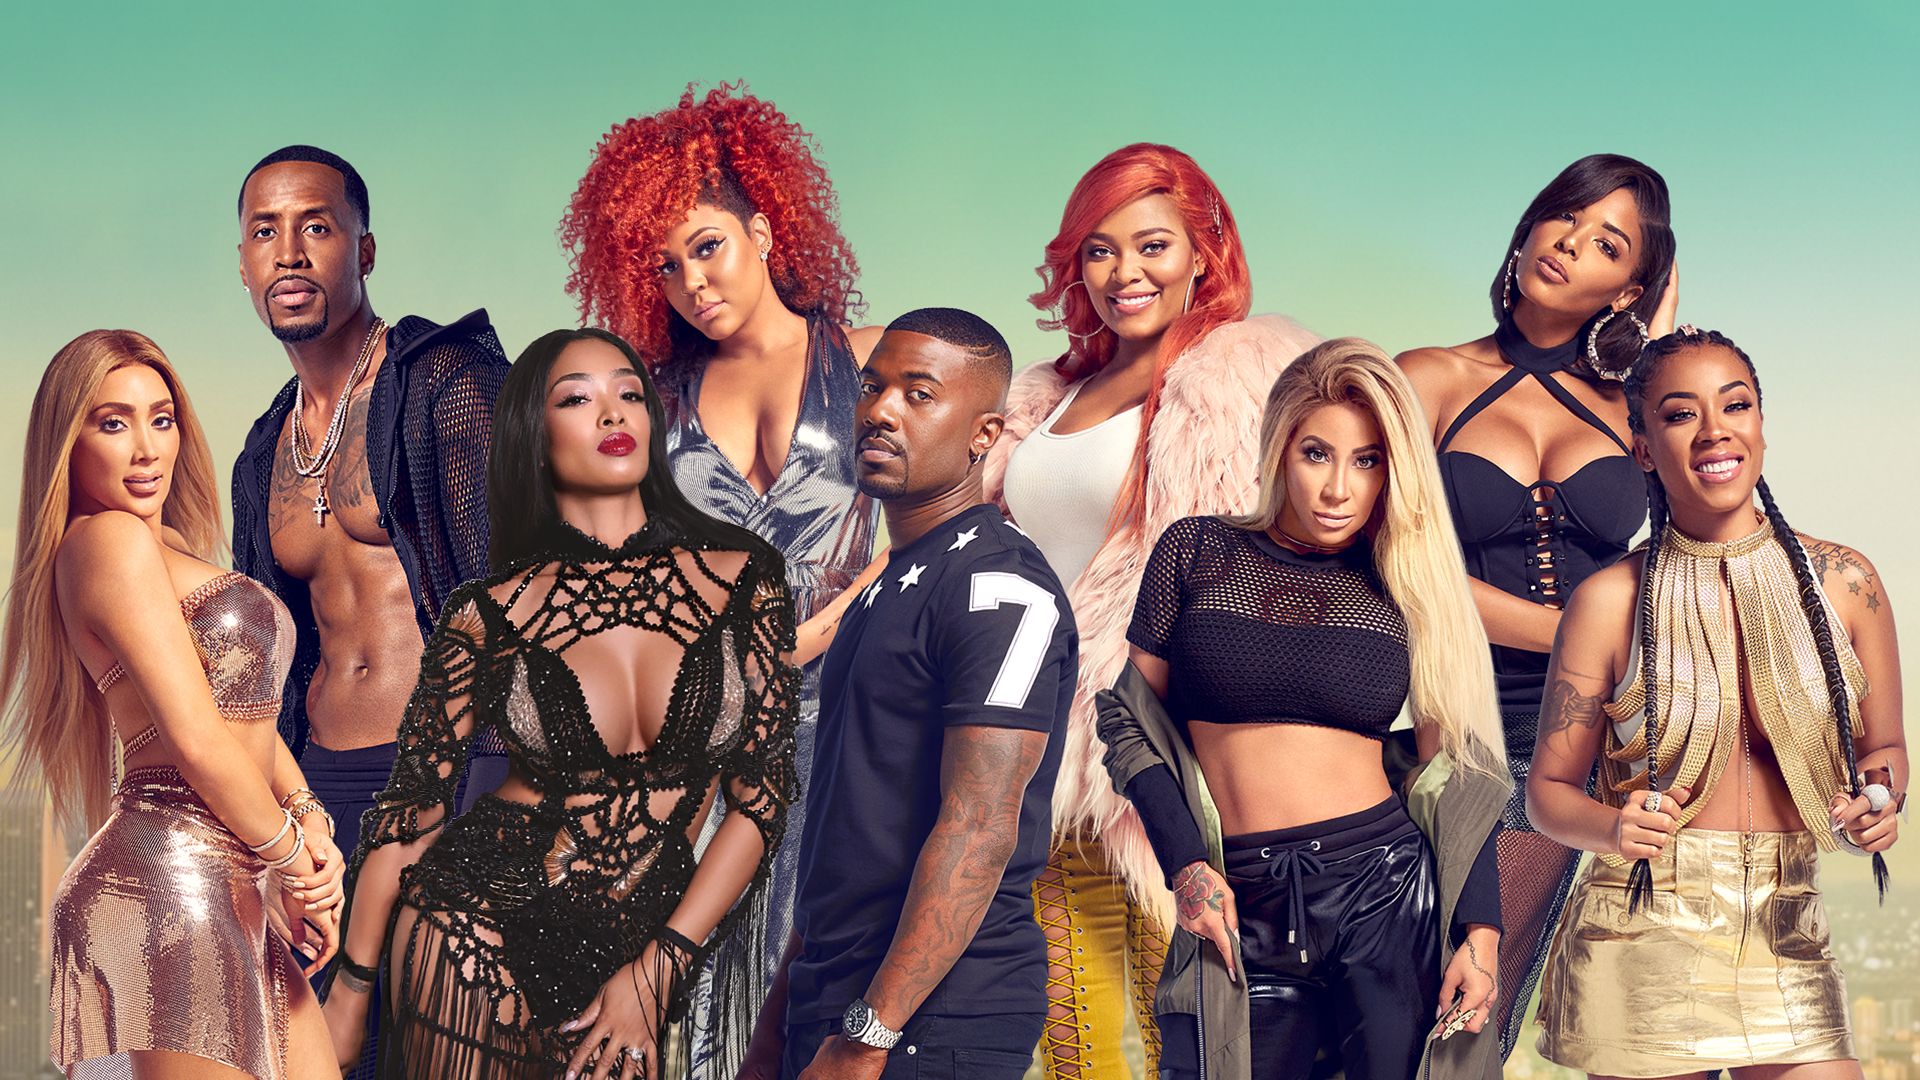 Love and Hip Hop Hollywood Extended Trailer. (2017) - Link: https://youtu.be/Ui0zApBDeRI